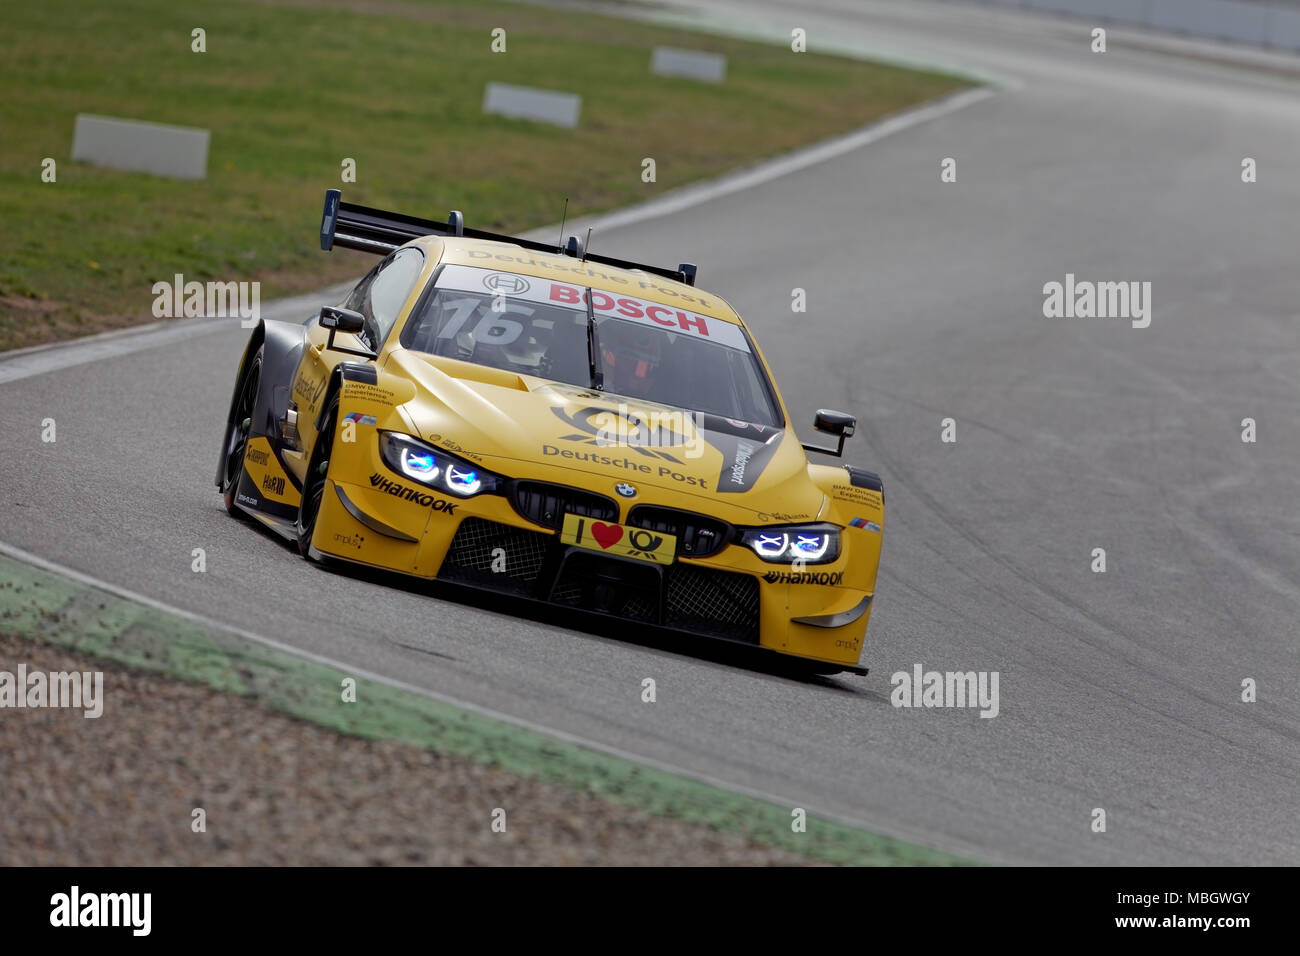 timo glock ger bmw m4 dtm 2018 tests hockenheim. Black Bedroom Furniture Sets. Home Design Ideas